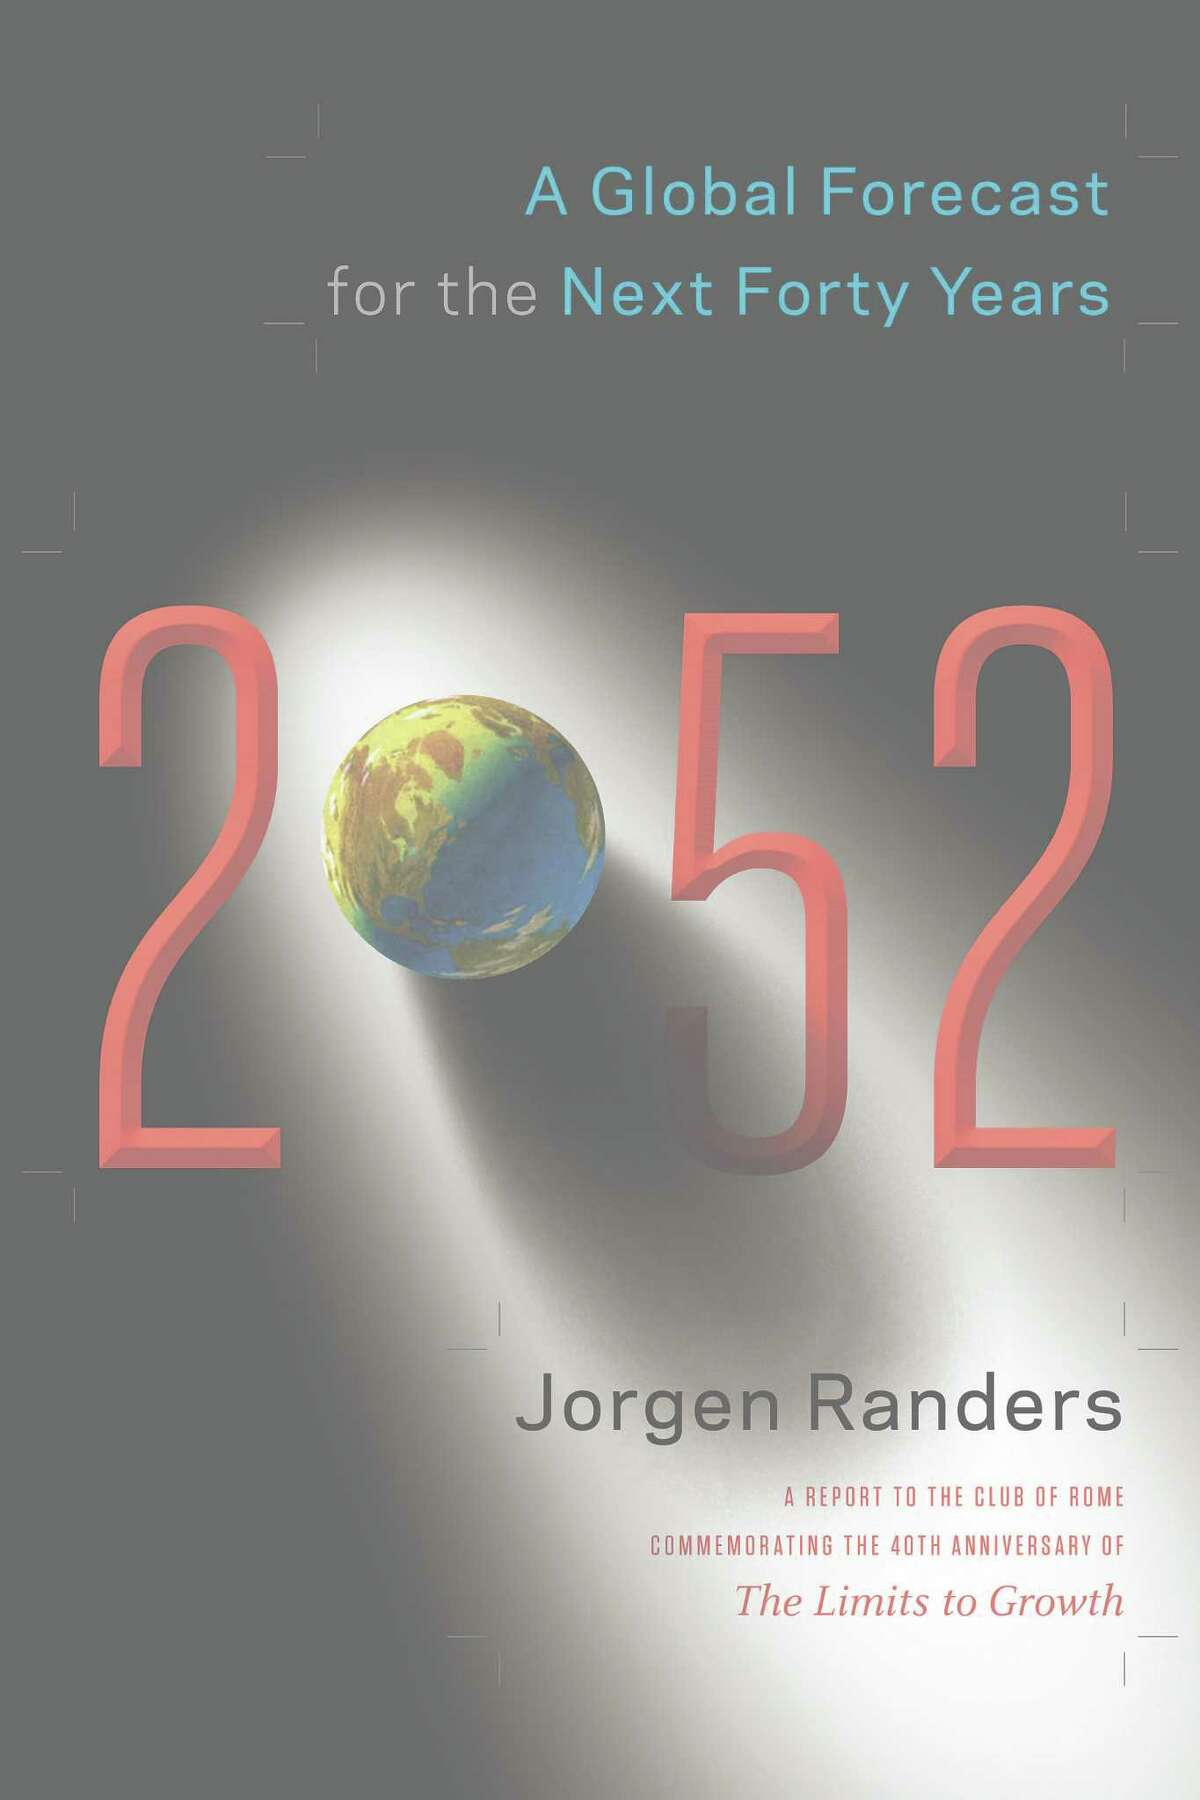 Jorgen Randers 2052: A Global Forecast for the Next Forty Years